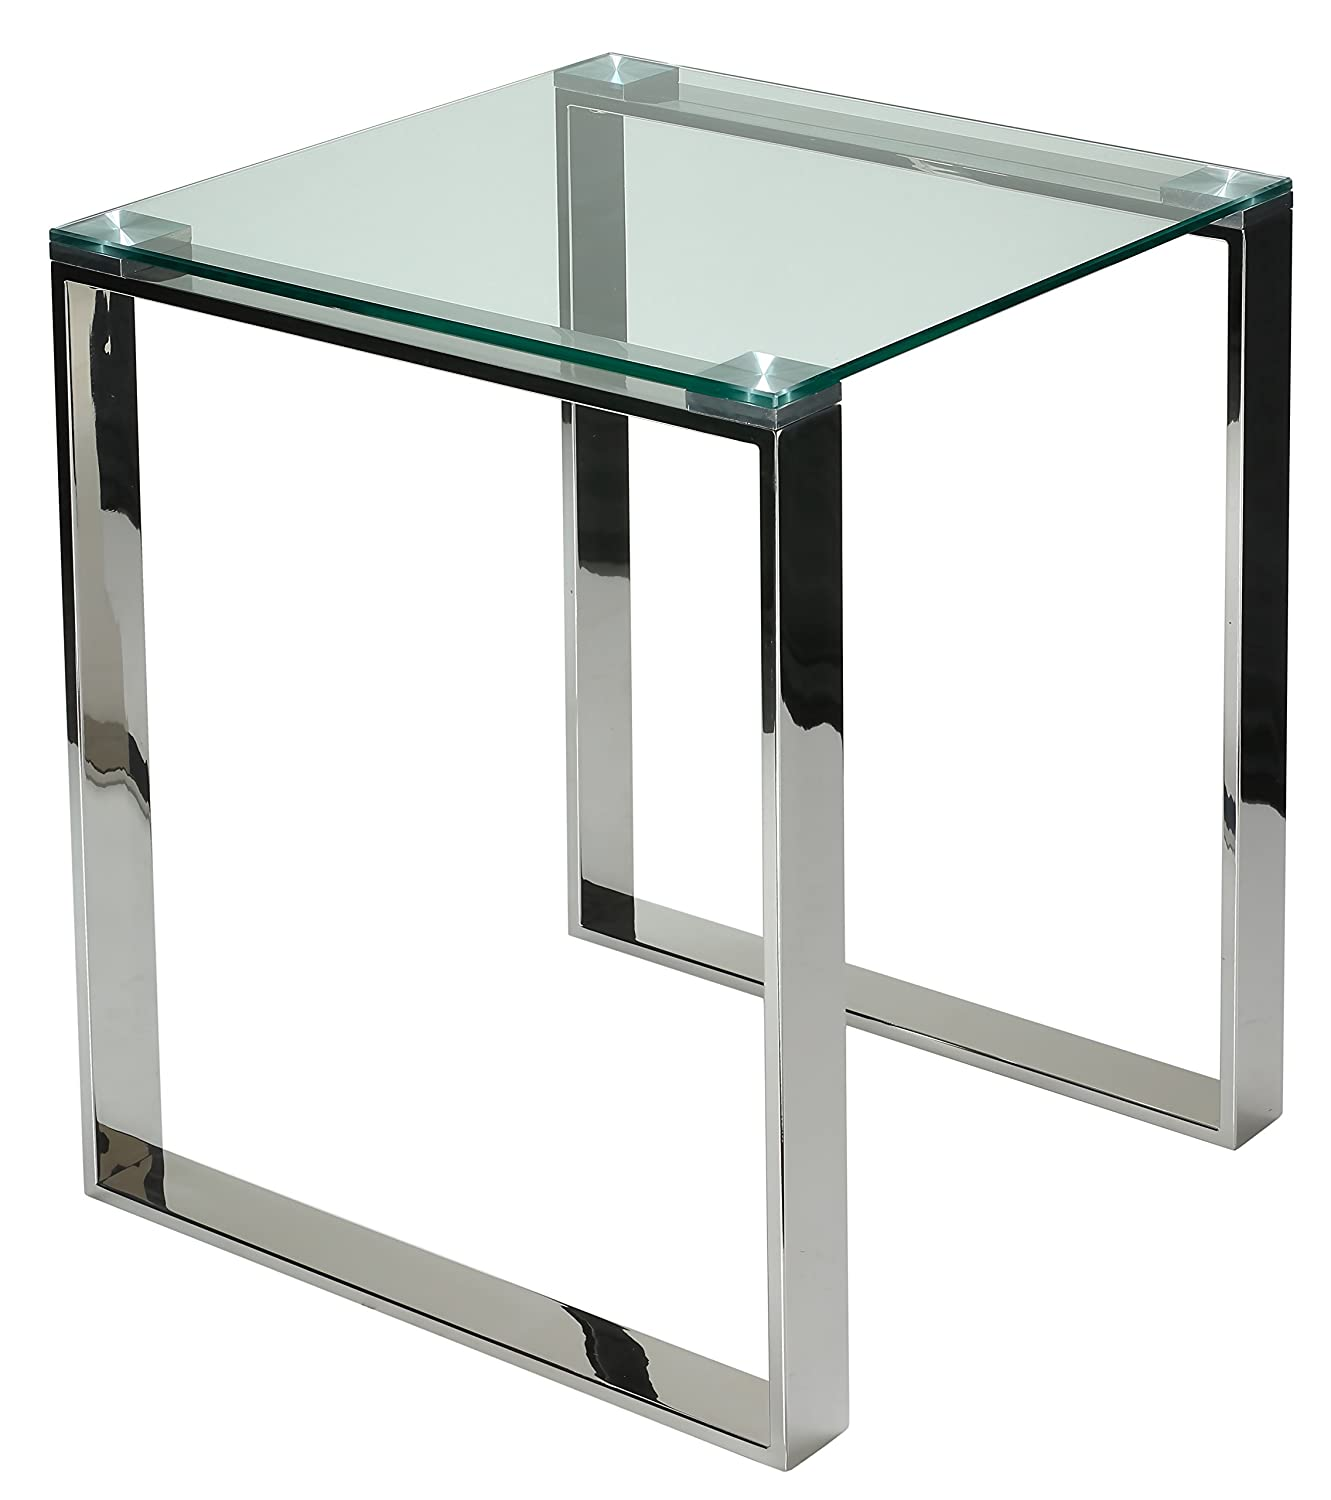 amazoncom cortesi home remi contemporary square glass end table withchrome finish kitchen  dining. amazoncom cortesi home remi contemporary square glass end table